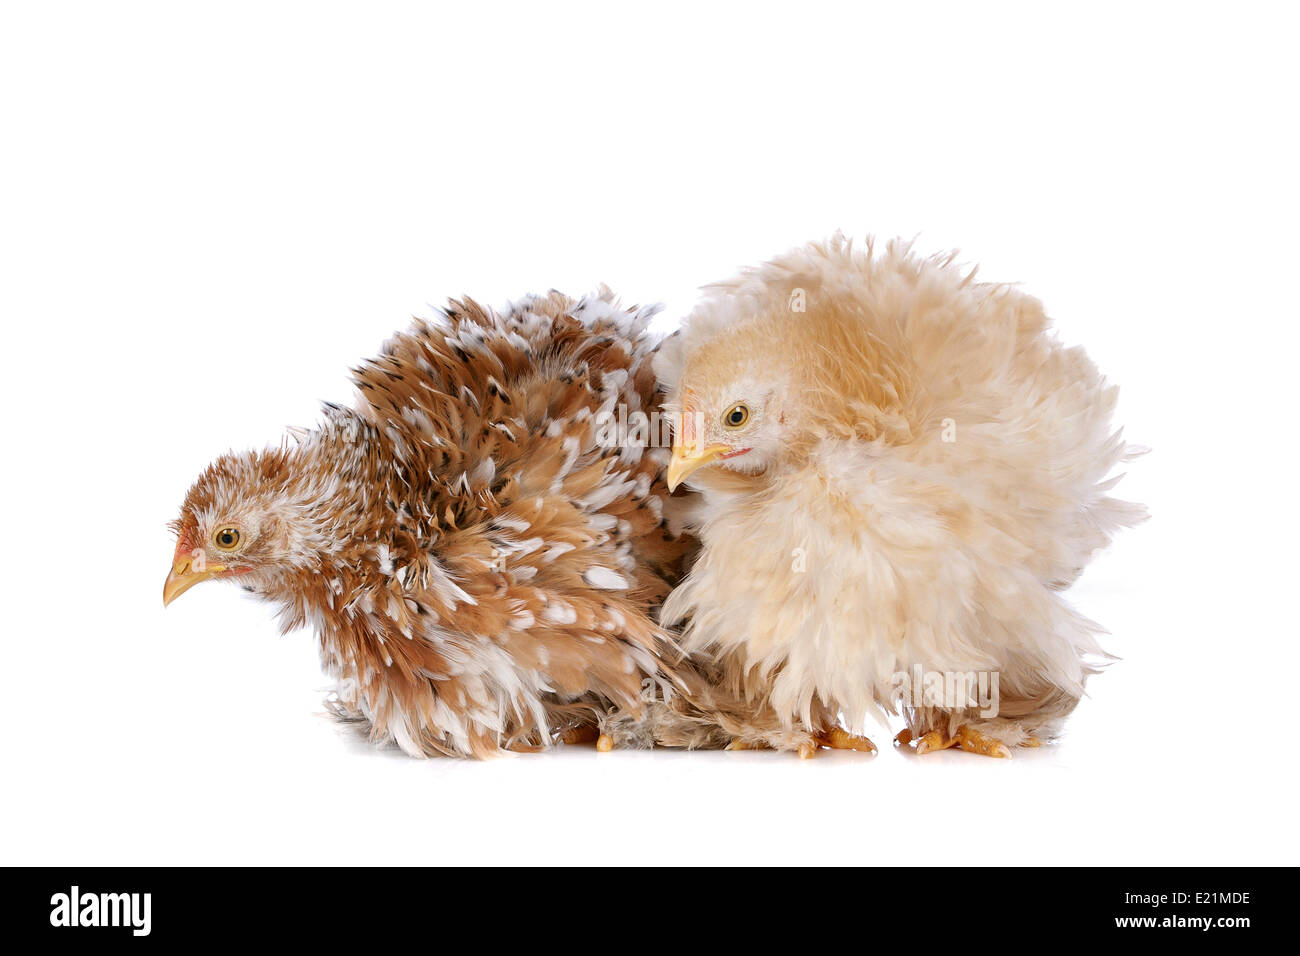 Two chickens - Stock Image